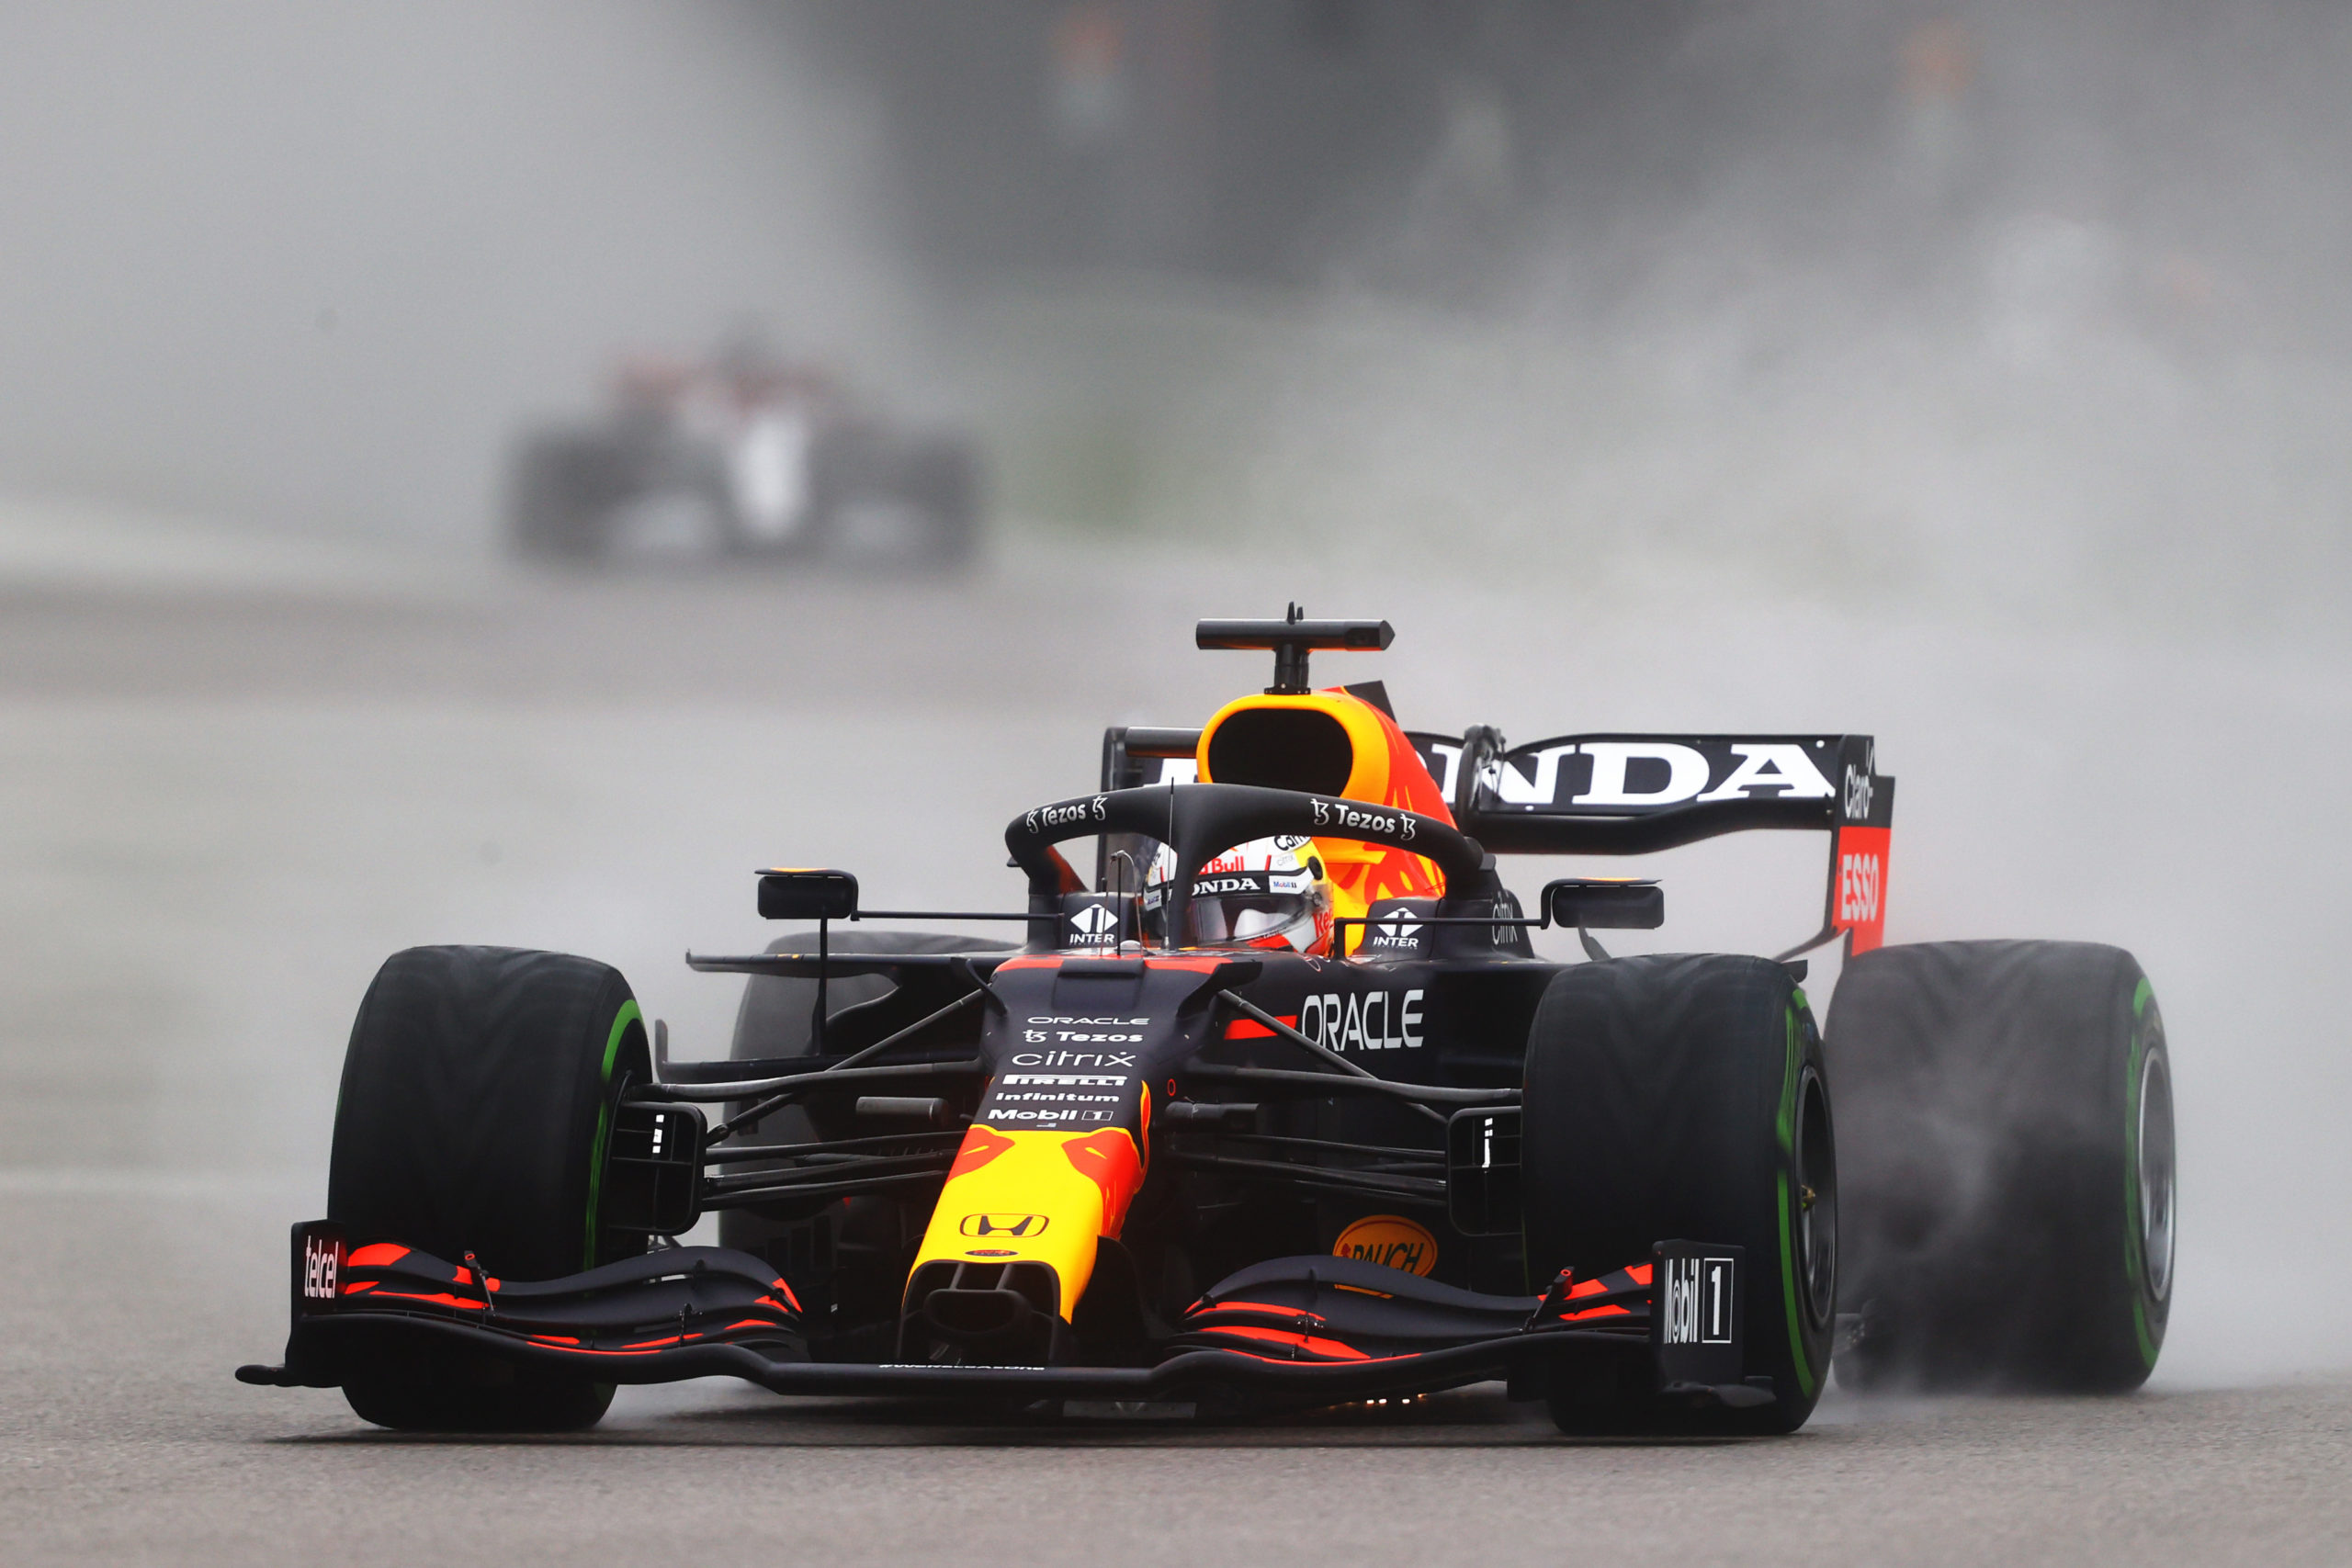 SOCHI, RUSSIA - SEPTEMBER 25: Max Verstappen of the Netherlands driving the (33) Red Bull Racing RB16B Honda during qualifying ahead of the F1 Grand Prix of Russia at Sochi Autodrom on September 25, 2021 in Sochi, Russia. (Photo by Bryn Lennon/Getty Images) // Getty Images / Red Bull Content Pool  // SI202109250195 // Usage for editorial use only //